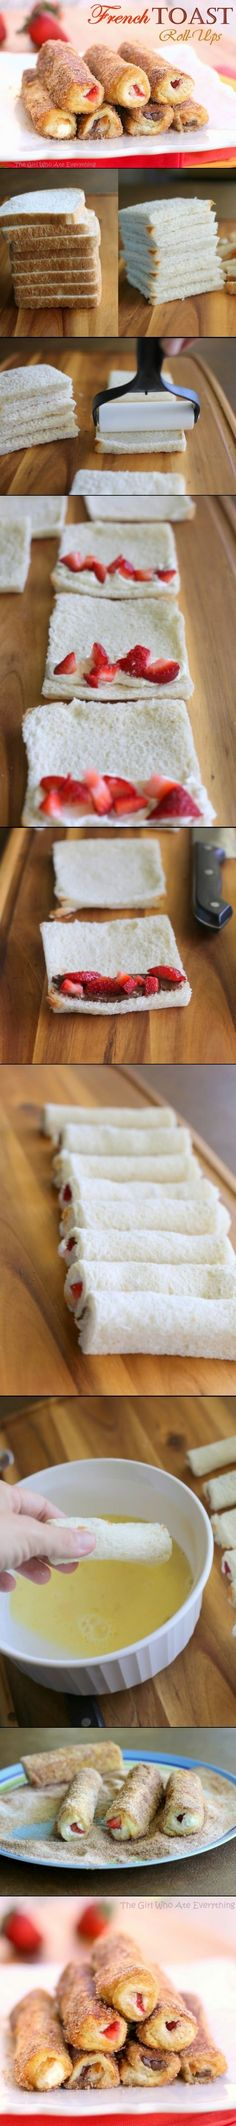 Easy and fun French toast roll ups. Fill them with cream cheese and berries or nutella and bananas. Instructions are in a different language but the photos make it pretty much self explanatory. Delicious Desserts, Dessert Recipes, Yummy Food, Elegante Desserts, French Toast Roll Ups, Diy Food, Kids Meals, Nutella, Love Food